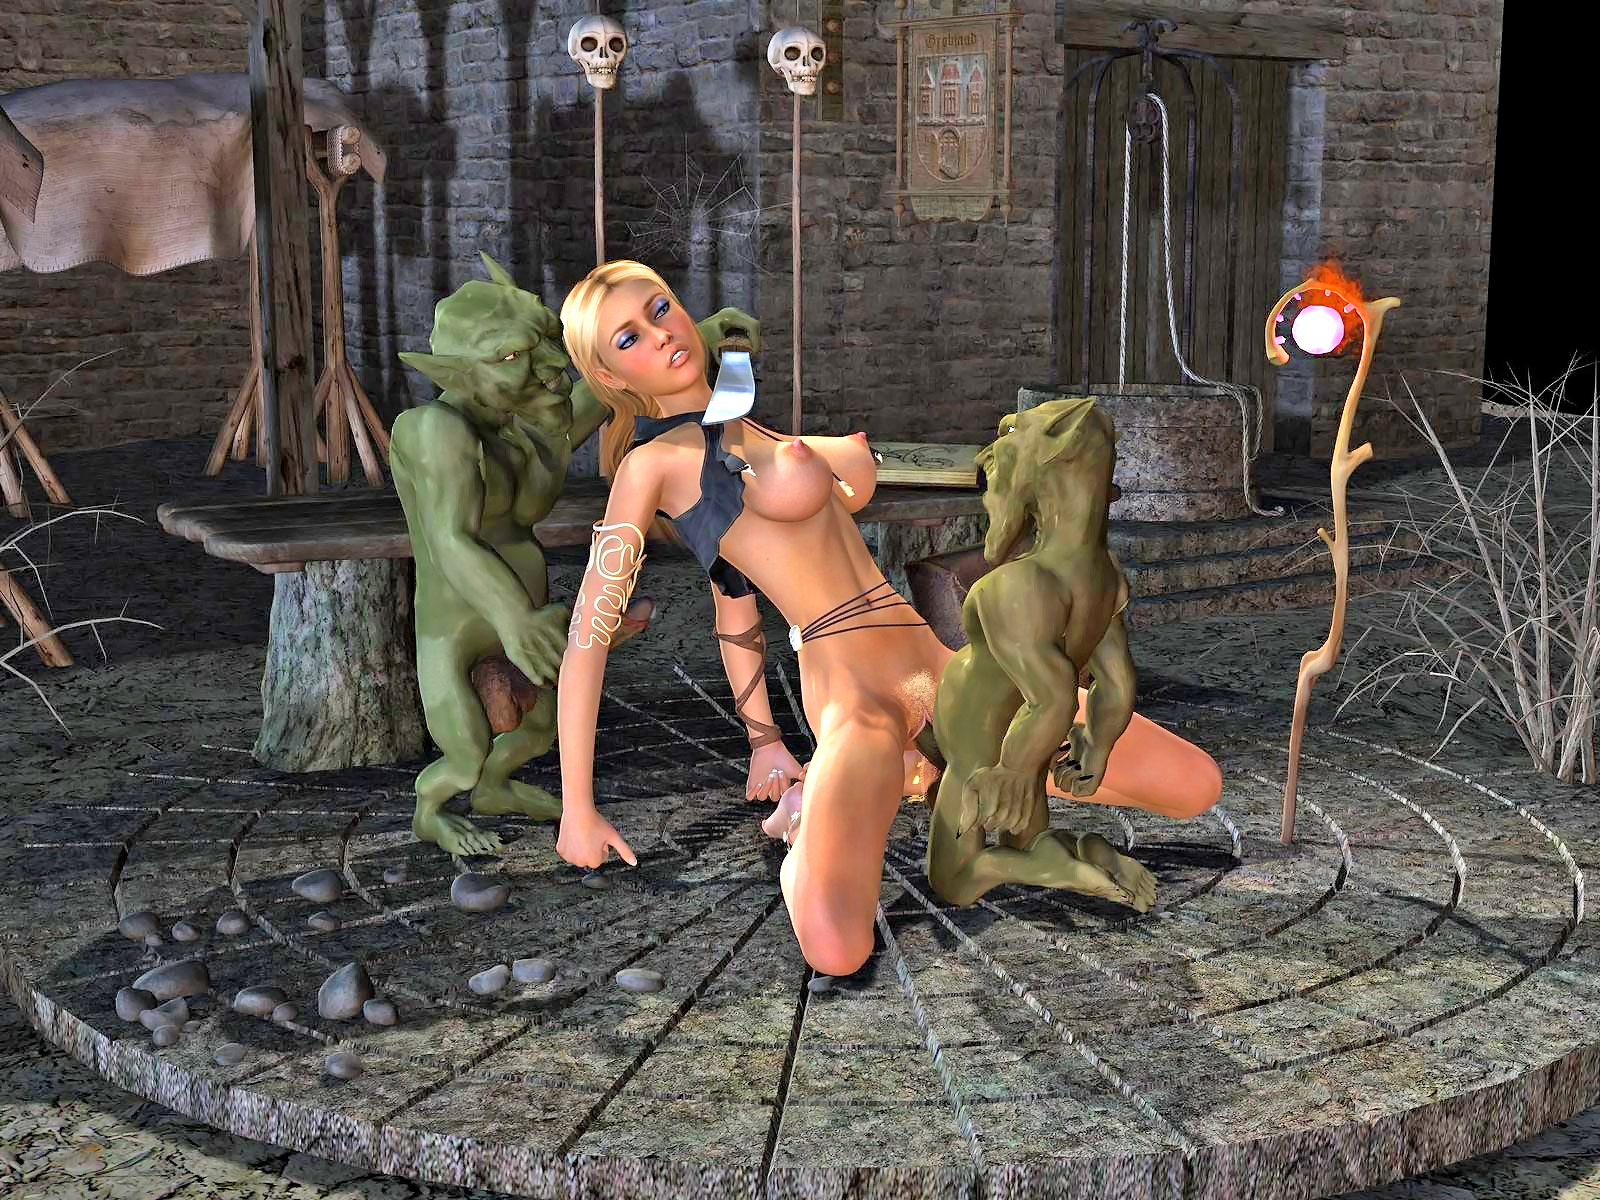 Toons fucked by creatures erotic gallery